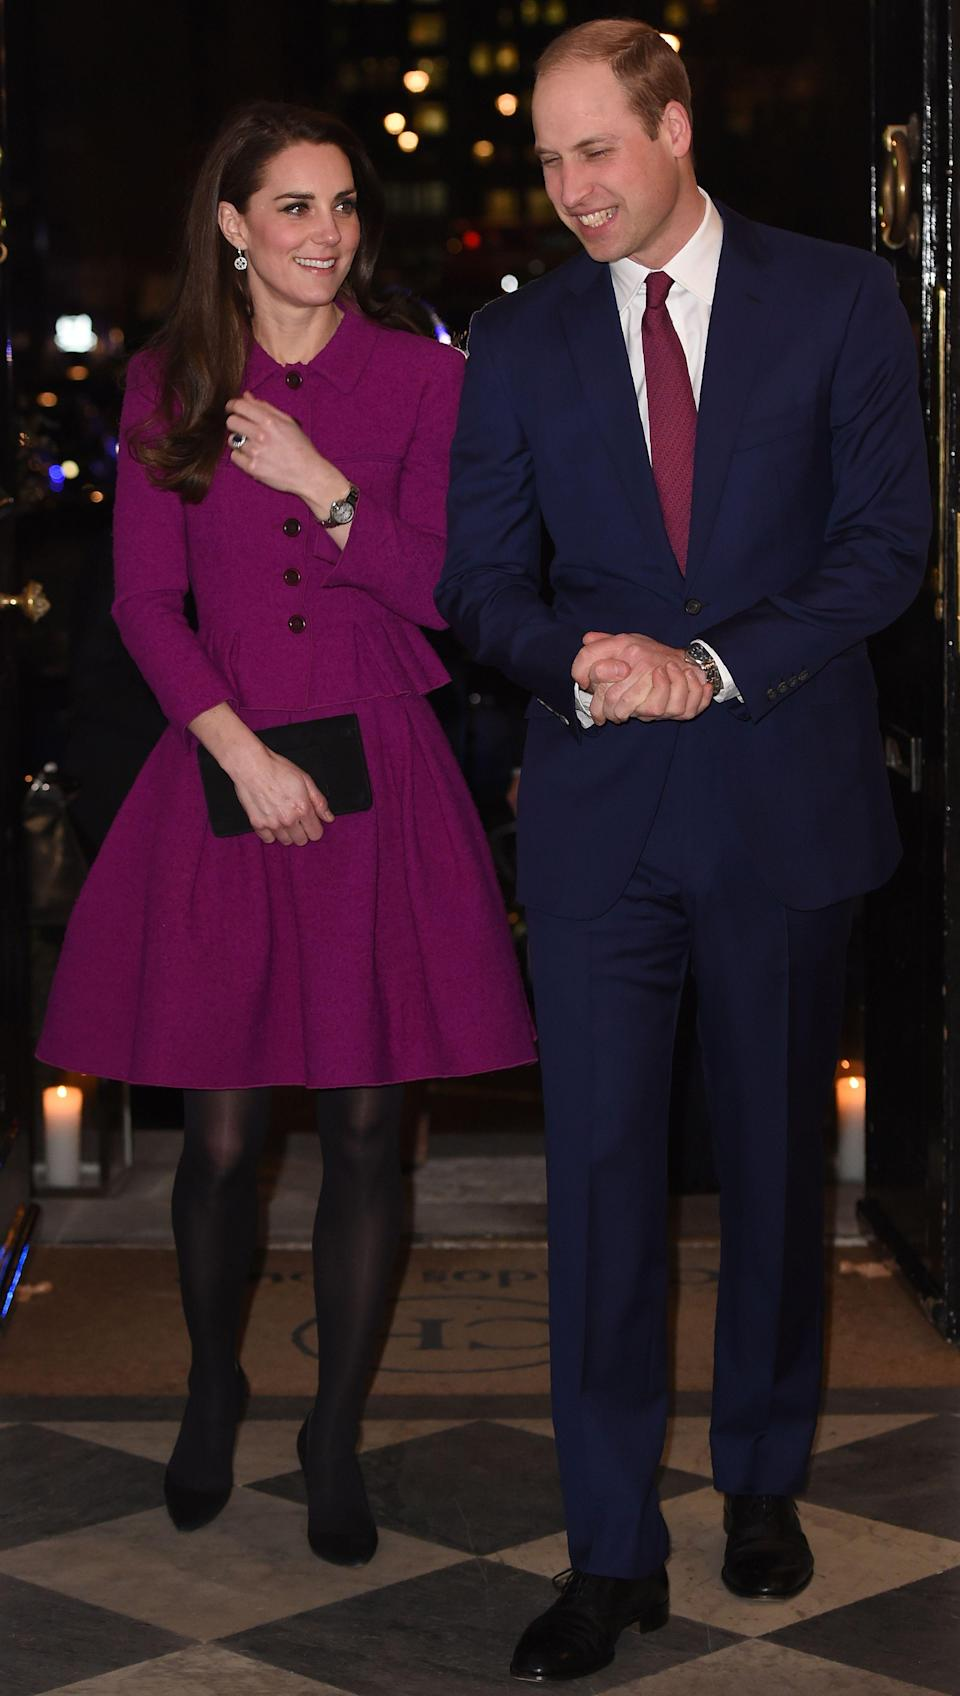 The Duchess of Cambridge first wore the ensemble back in February 2017 for the UK Guild of Health Writers conference [Photo: Getty]